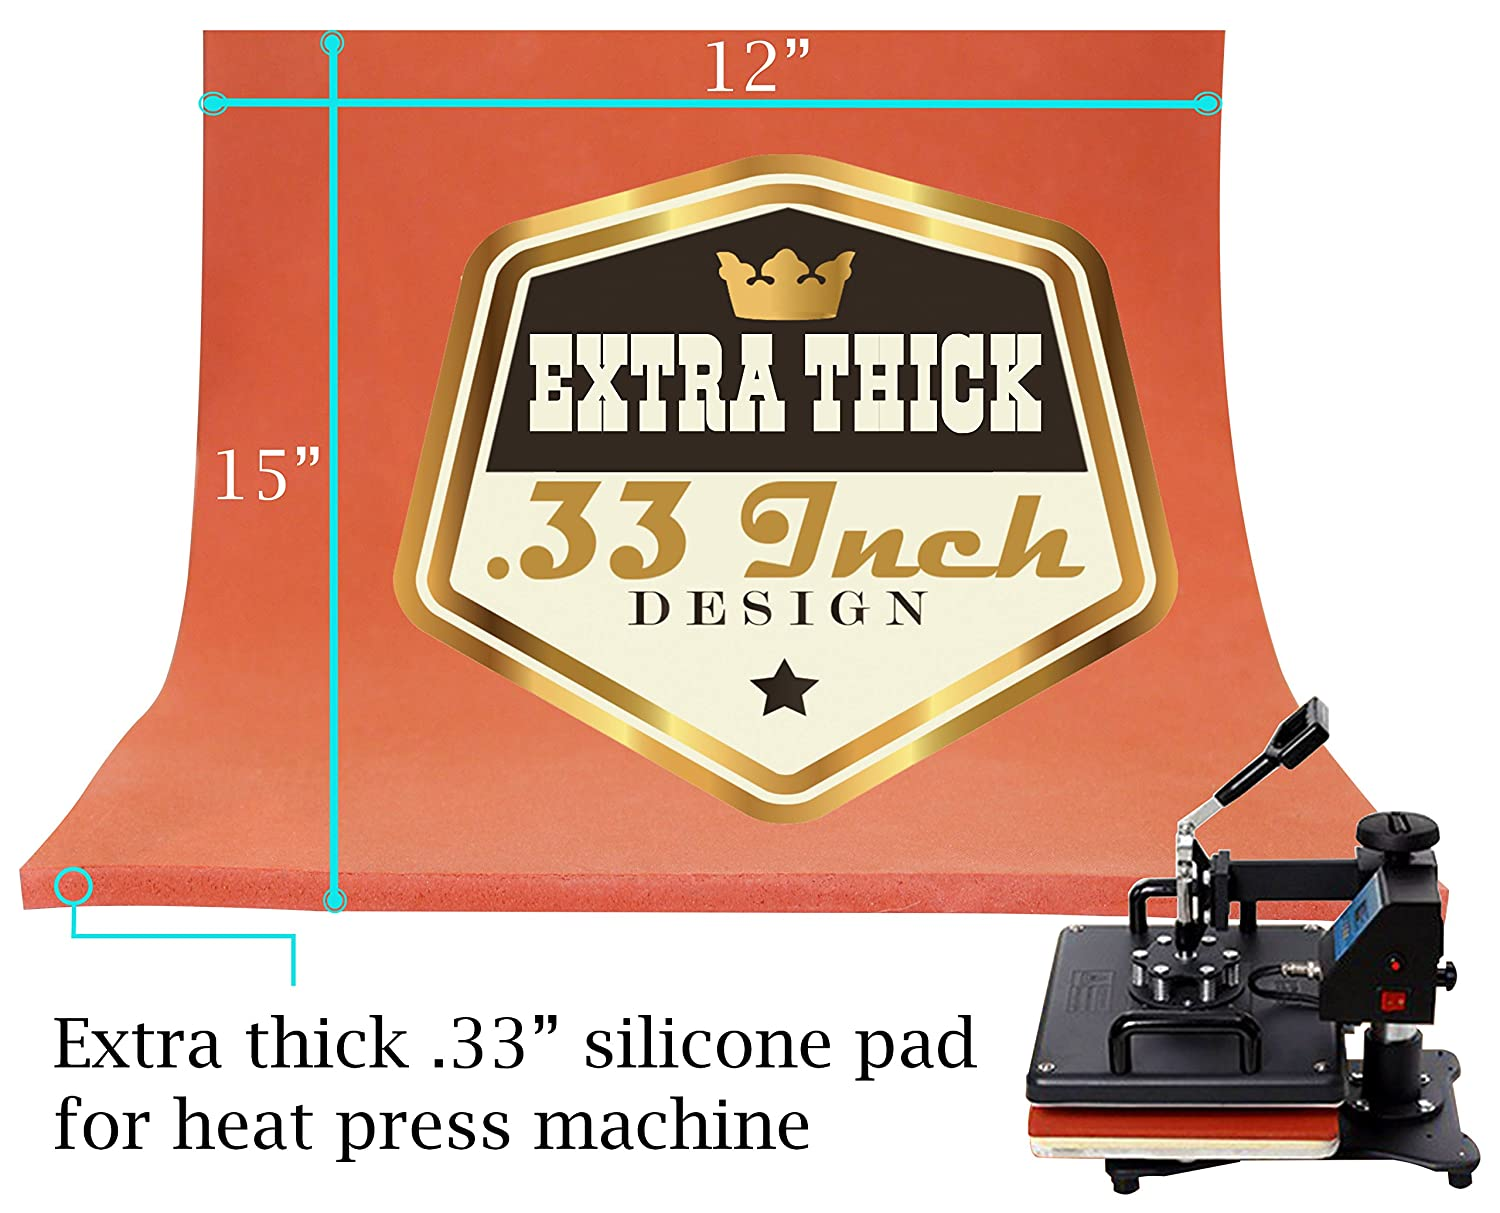 12 x 15 Extra Thick Silicone Pad, Heat Press Silicone Mat Replacement, Thickest (.33) on Amazon by Hoptopper 4336975518